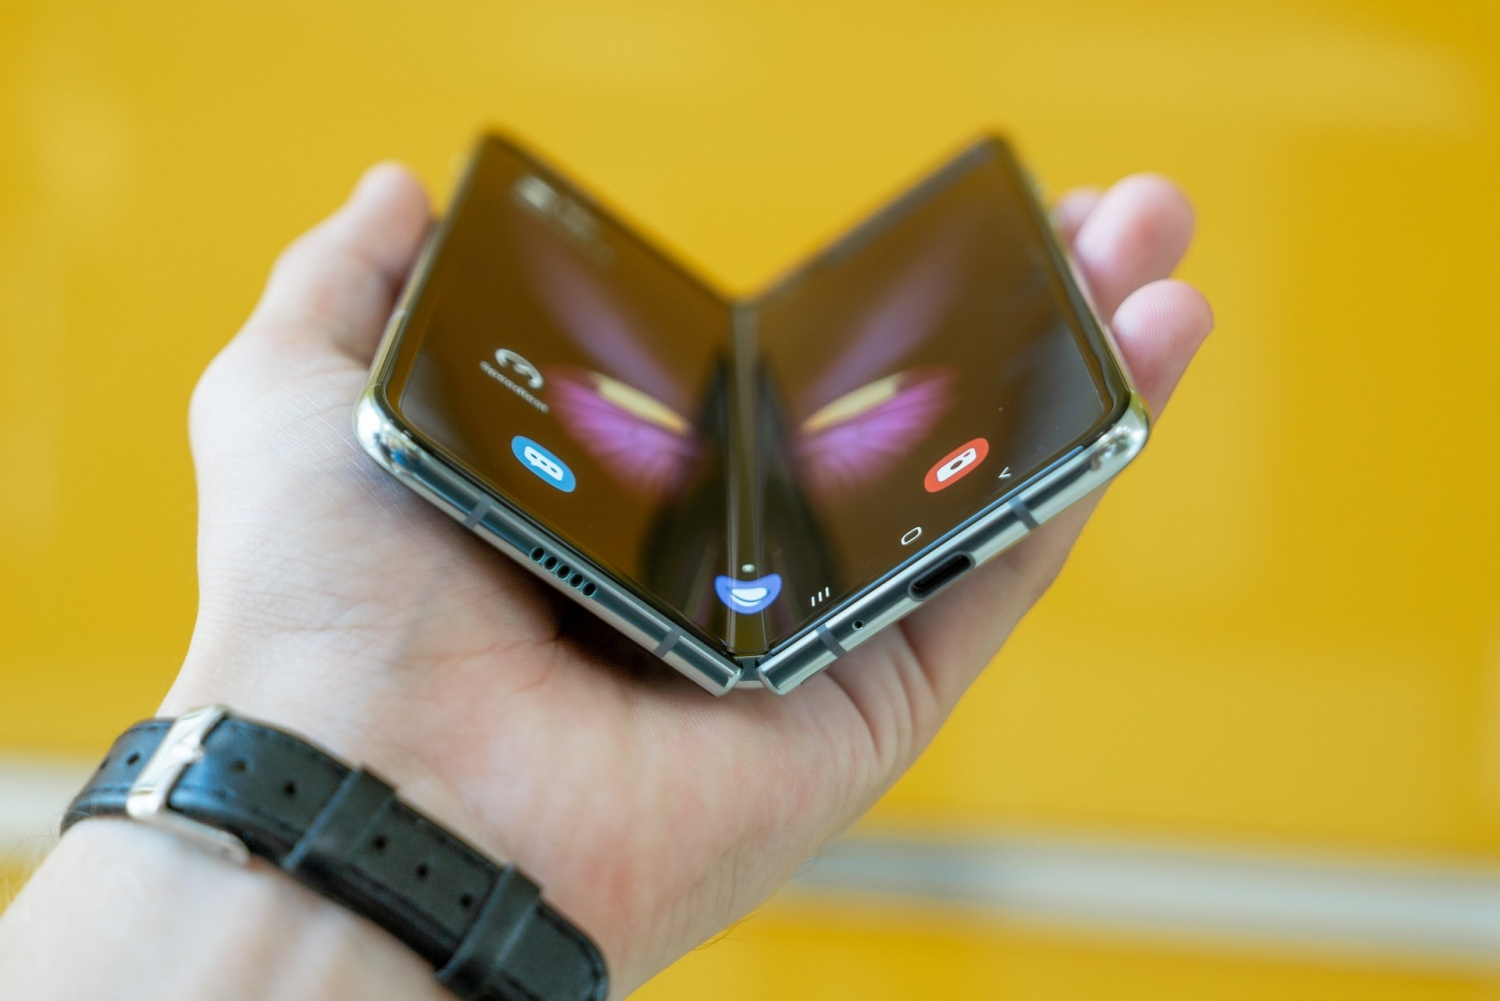 Google Android 12.1 Leak: A Foldable Phone Might Arrive This Year Together With an Upcoming Software Update